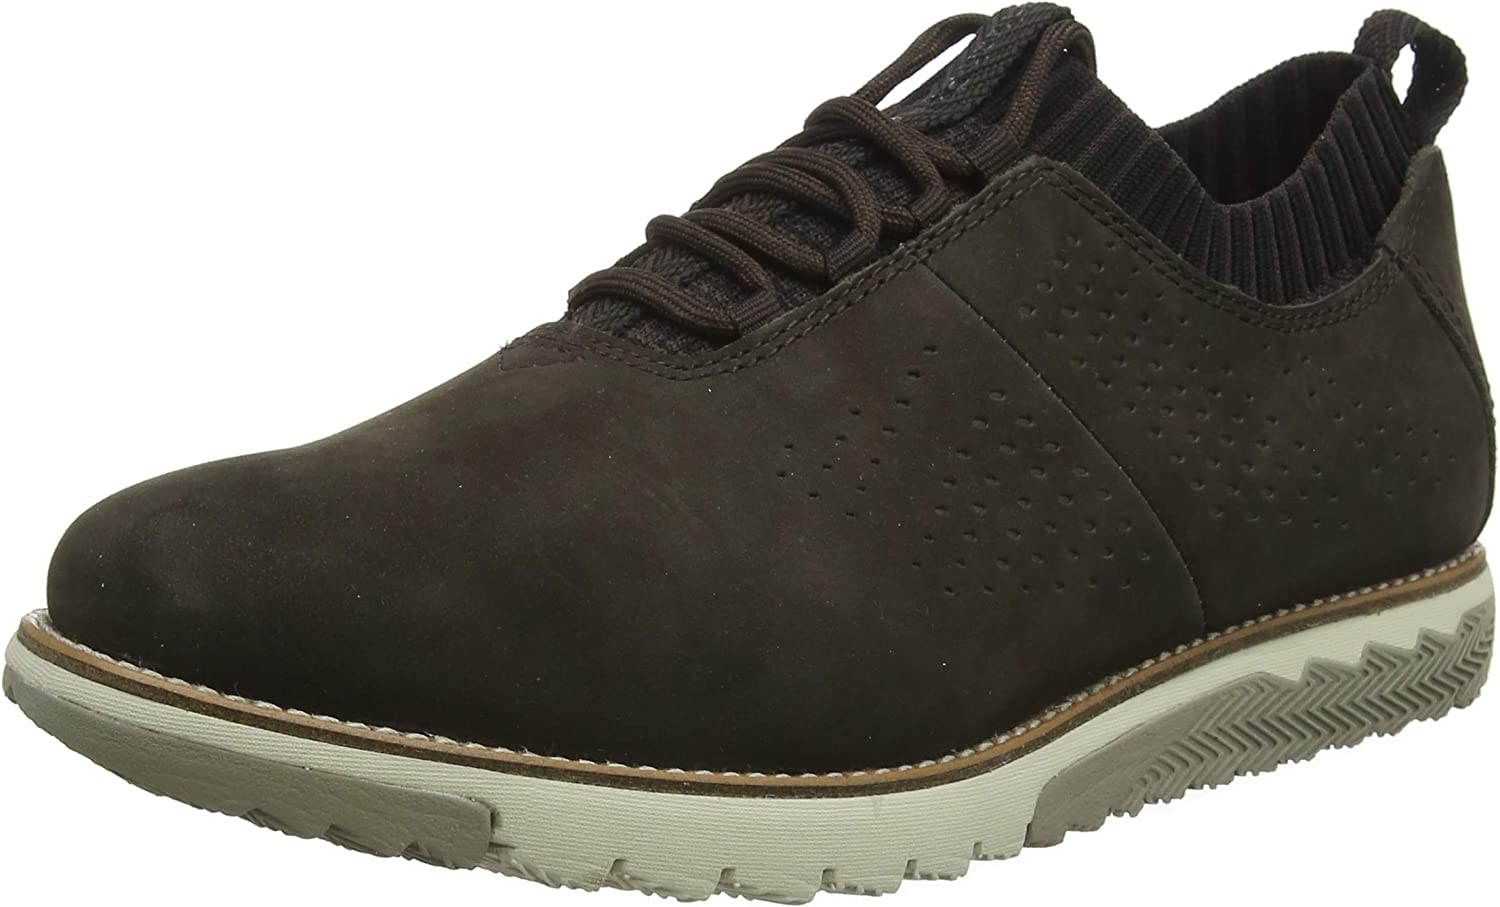 Hush Puppies Expert Knit Oxford, paniers Homme